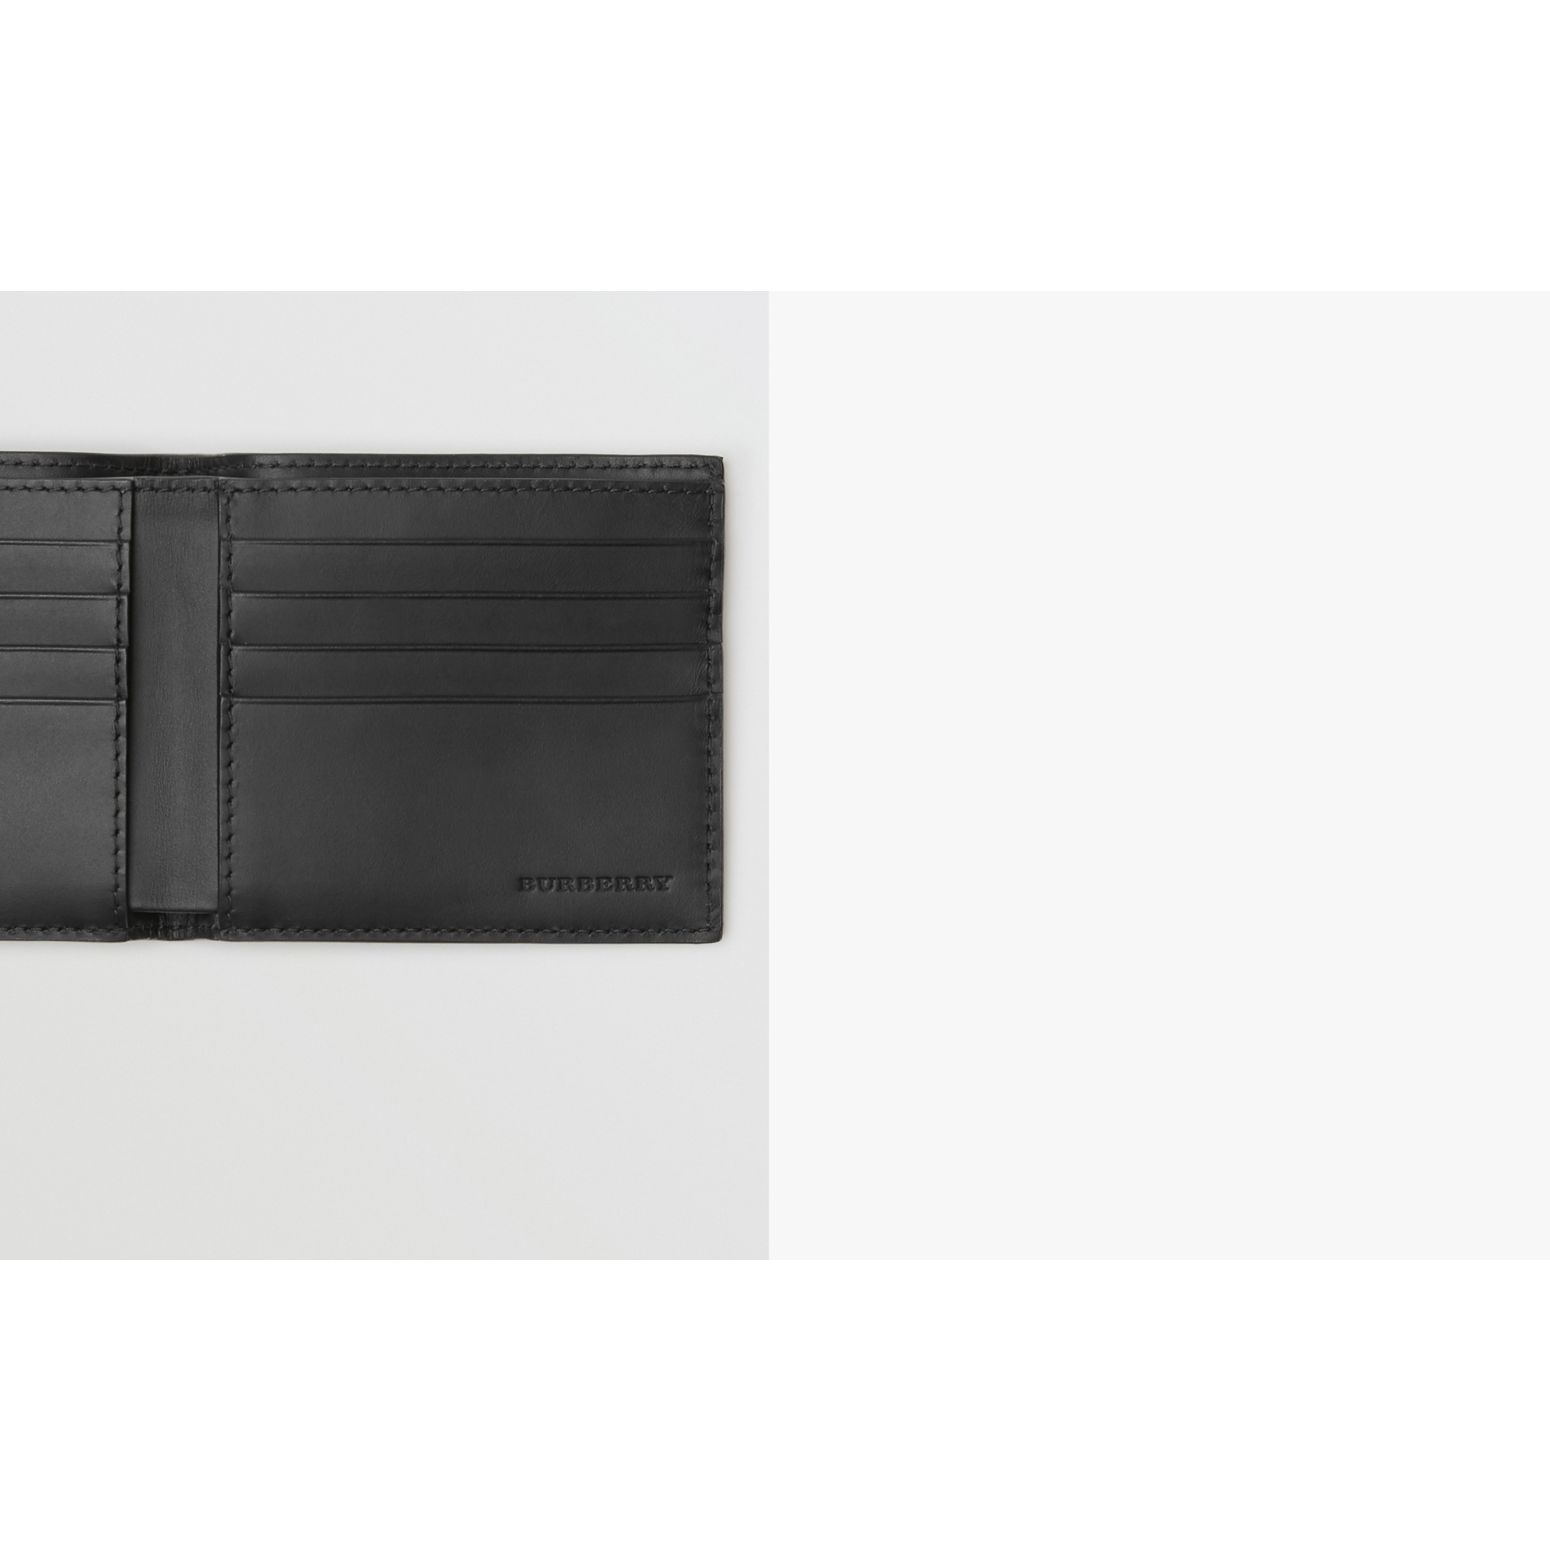 London Leather International Bifold Wallet in Black - Men | Burberry - gallery image 1